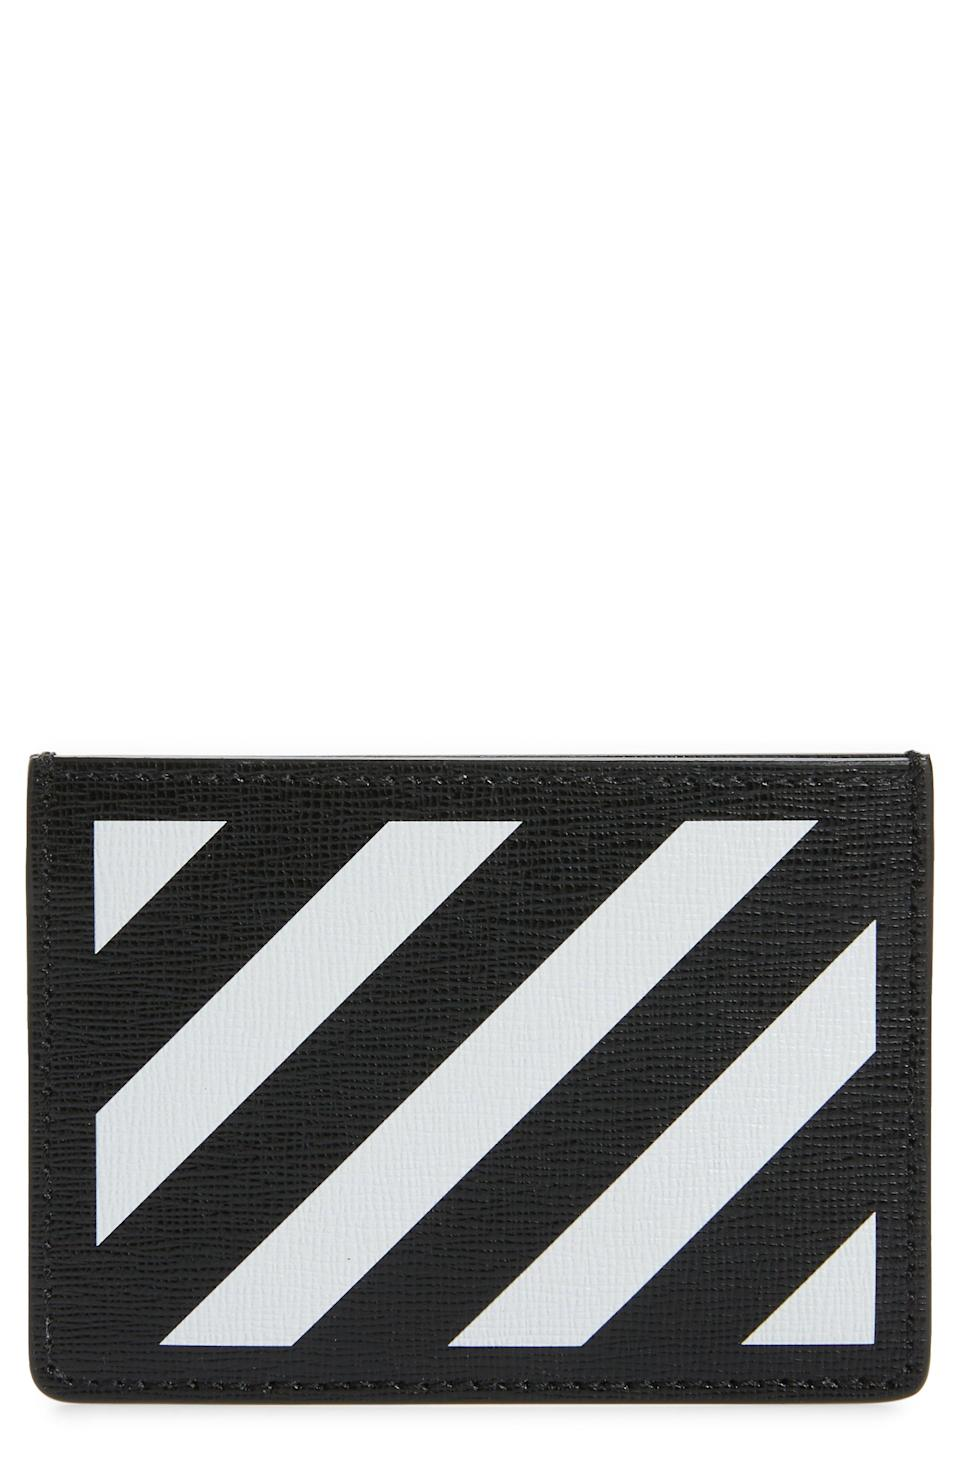 """<p><strong>Off-White</strong></p><p>nordstrom.com</p><p><strong>$275.00</strong></p><p><a href=""""https://go.redirectingat.com?id=74968X1596630&url=https%3A%2F%2Fwww.nordstrom.com%2Fs%2Foff-white-diagonal-stripe-card-wallet%2F5874721&sref=https%3A%2F%2Fwww.esquire.com%2Fstyle%2Fmens-accessories%2Fg35924710%2Fmens-luxury-wallets%2F"""" rel=""""nofollow noopener"""" target=""""_blank"""" data-ylk=""""slk:Shop Now"""" class=""""link rapid-noclick-resp"""">Shop Now</a></p><p>Or, to Abloh-ize it: """"WALLET."""" </p>"""